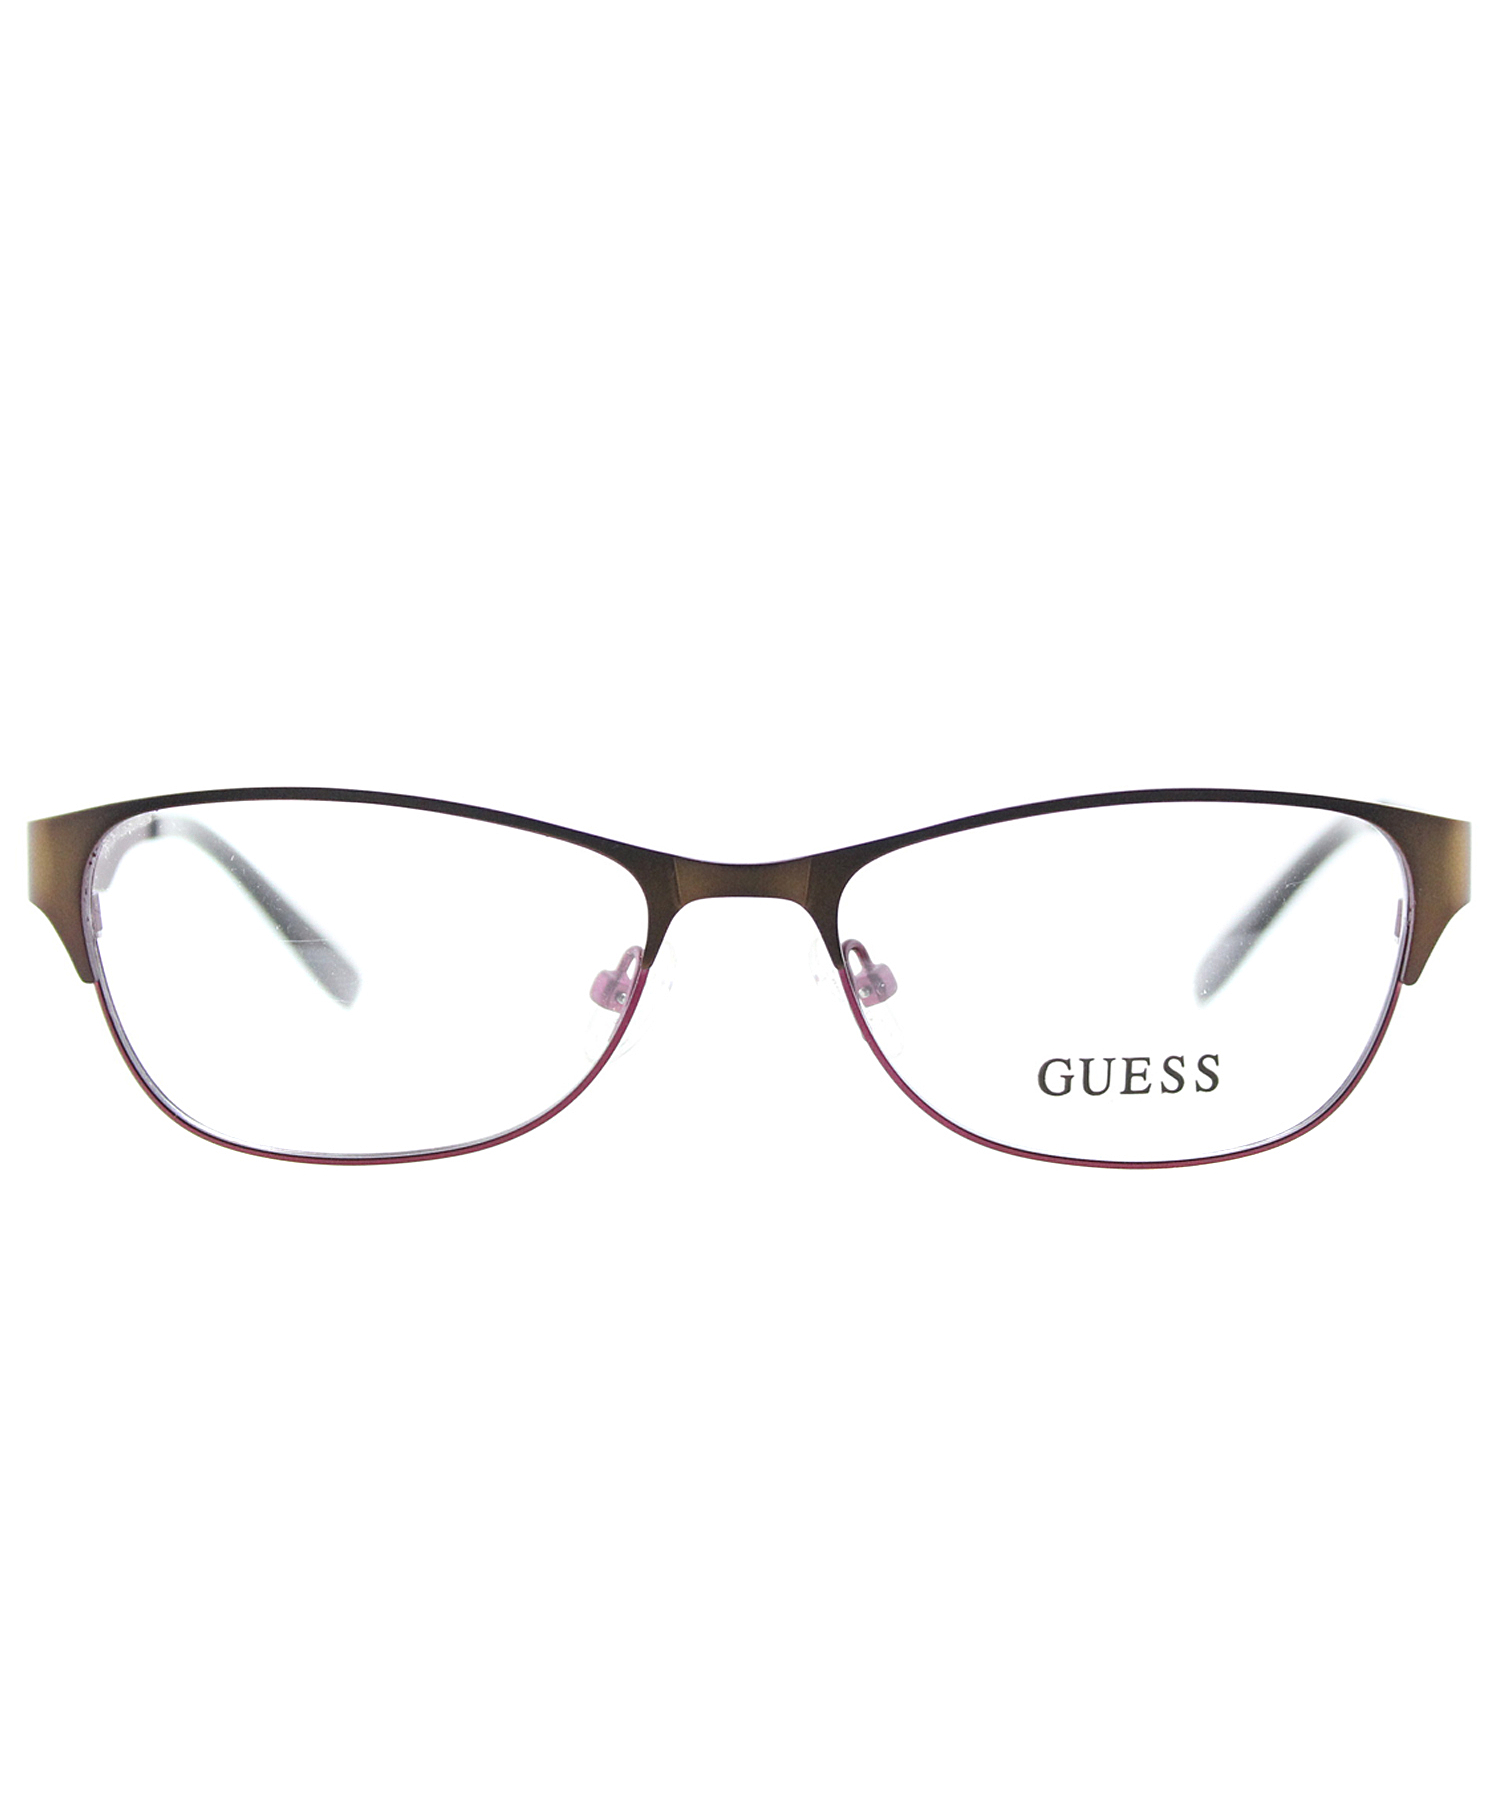 Guess Cat-eye Metal Eyeglasses in Brown - Save 19% Lyst